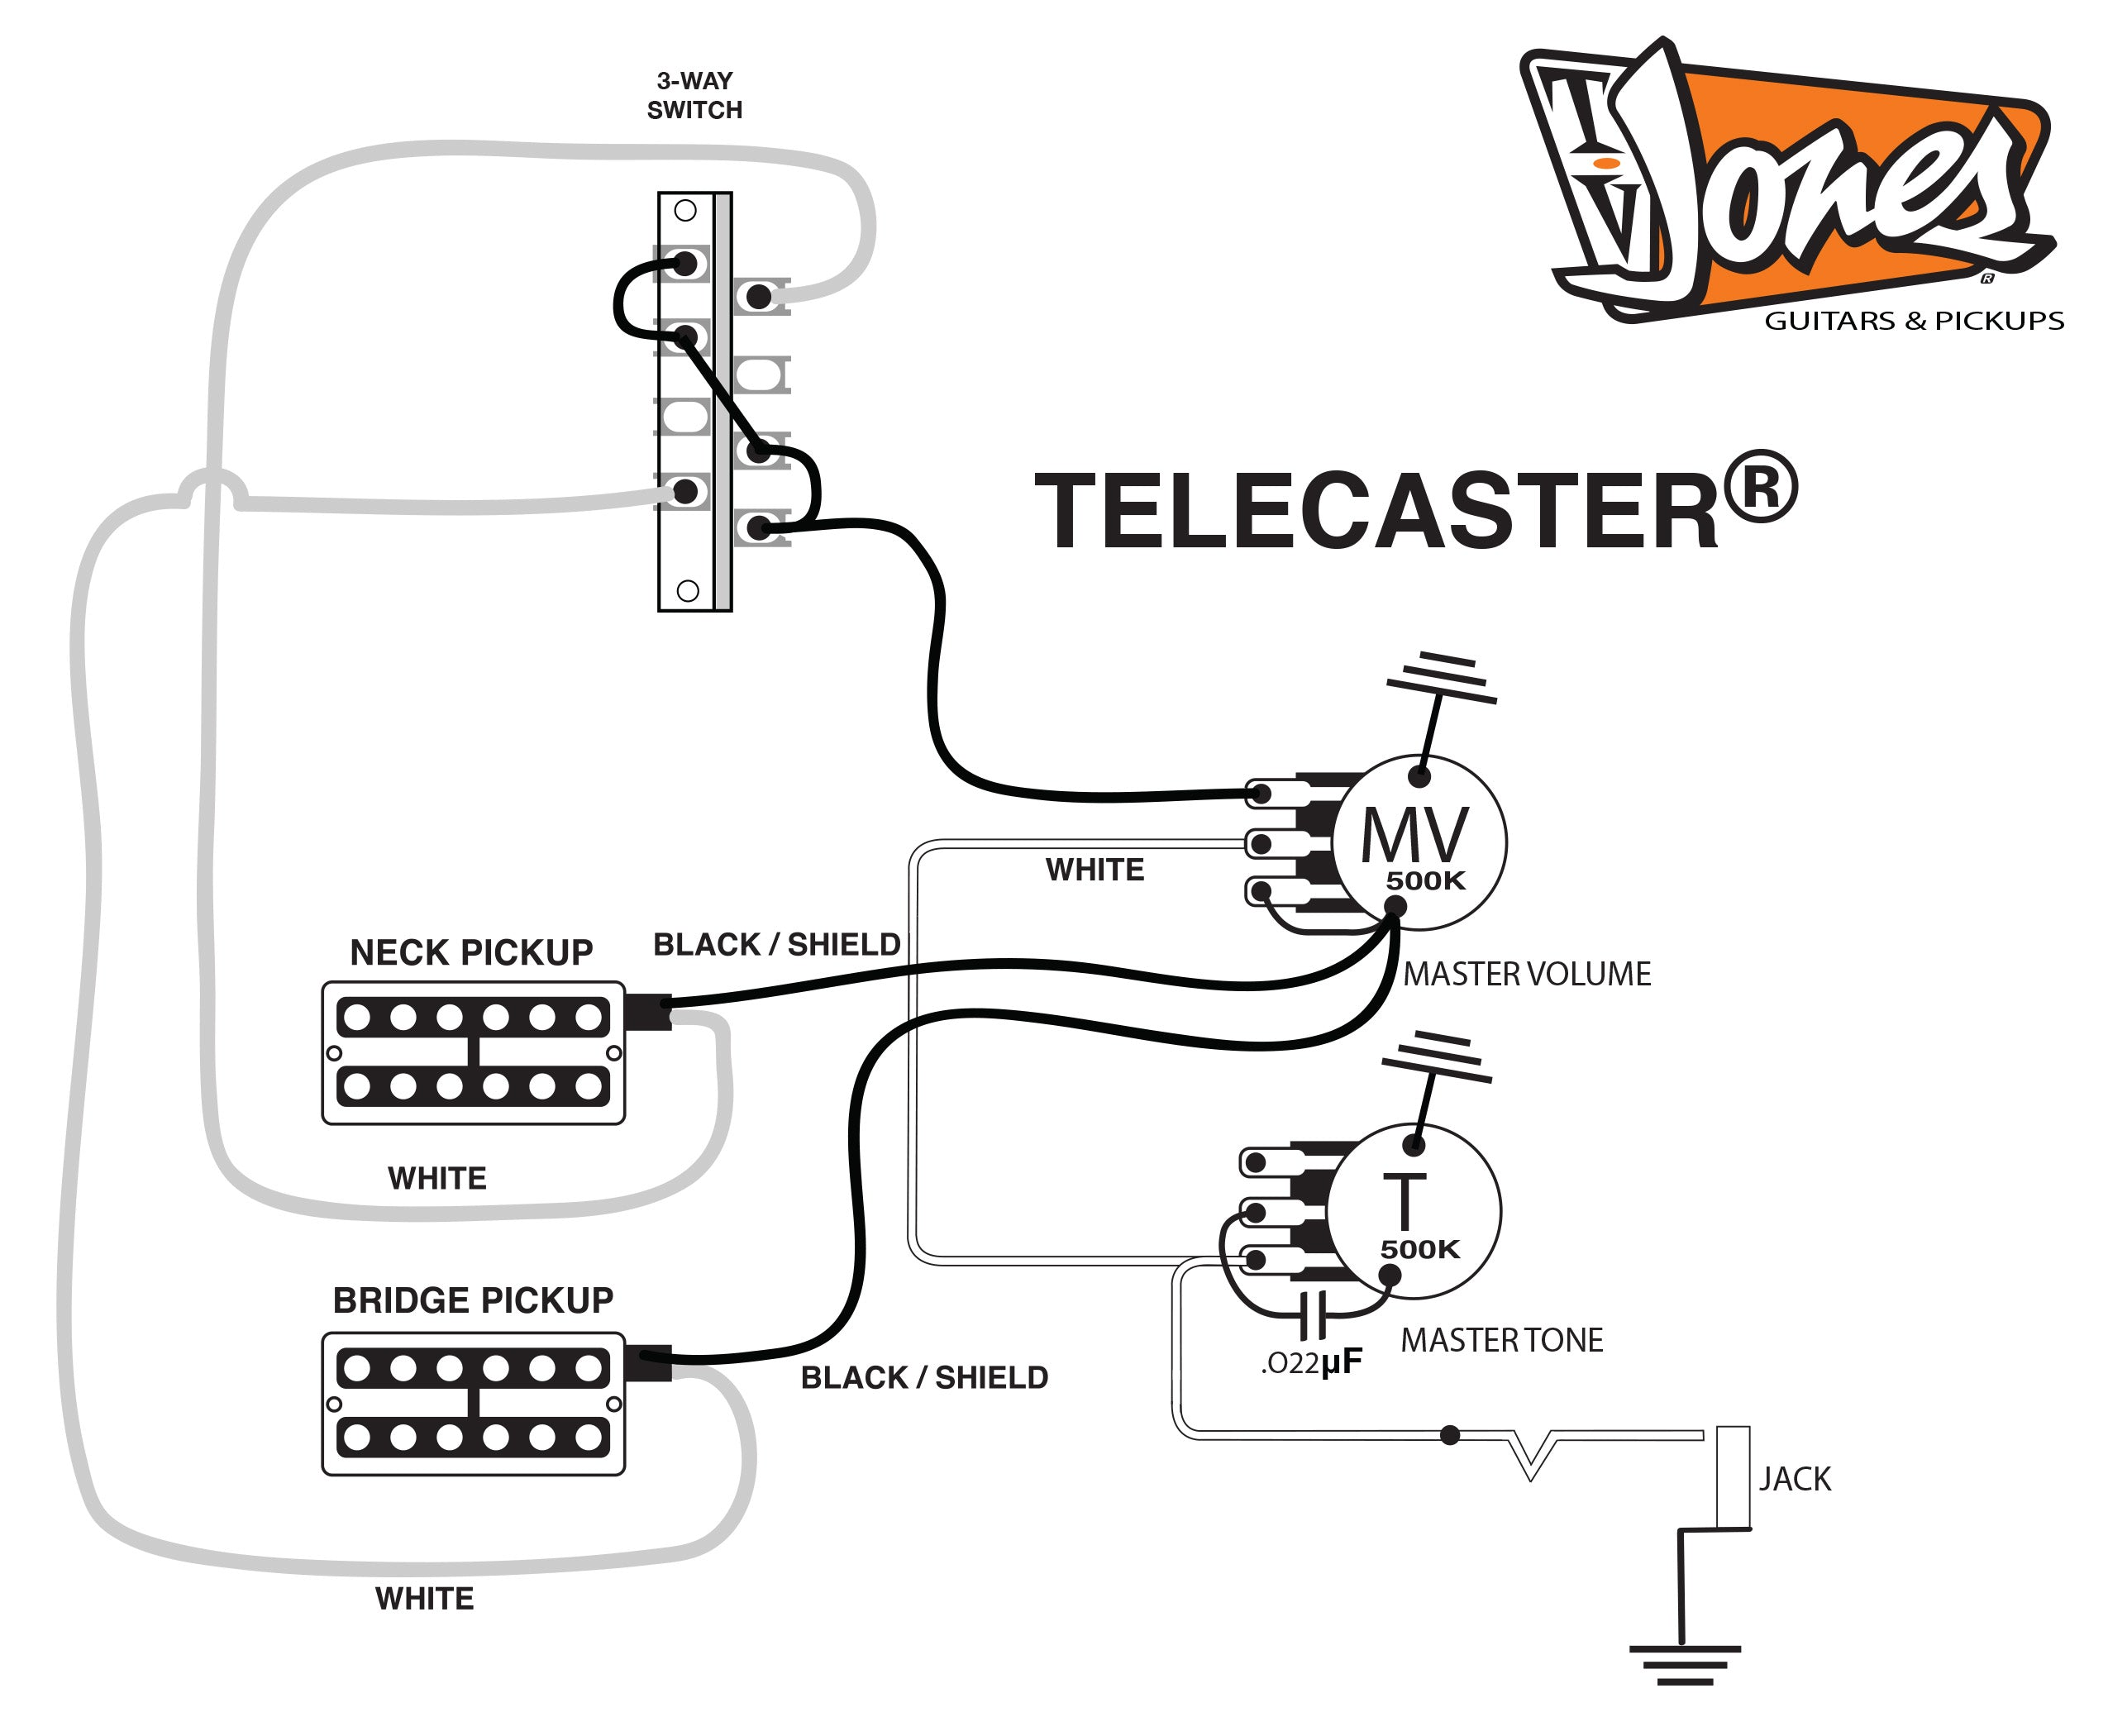 tv jones product dimensions fender player jaguar hh wiring schematics fender passport 500 wiring schematics